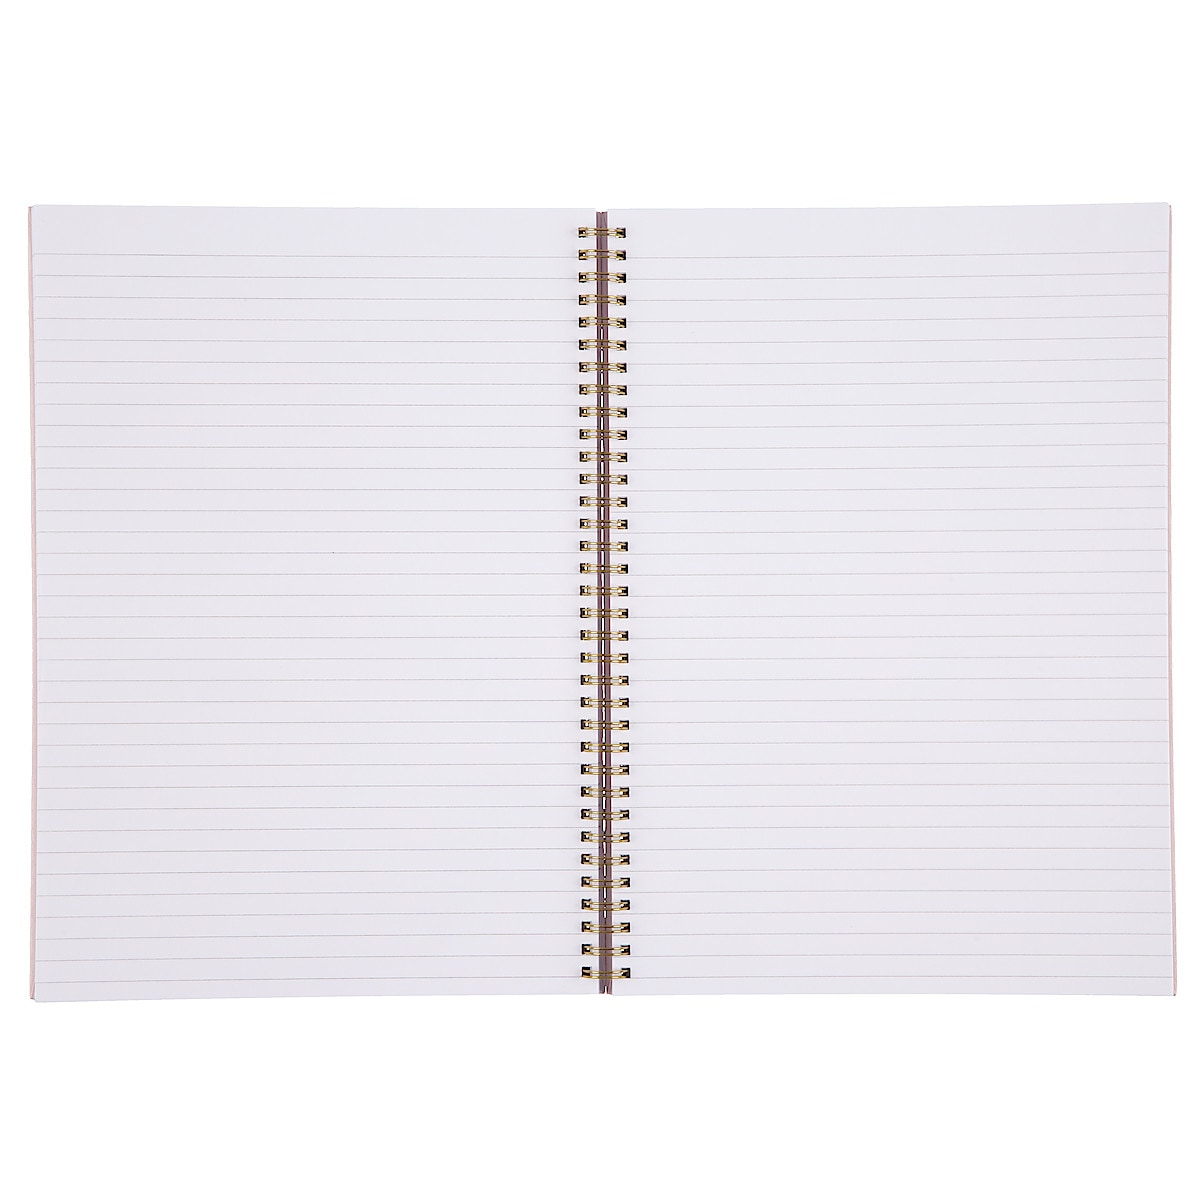 A4 Lined Notebook